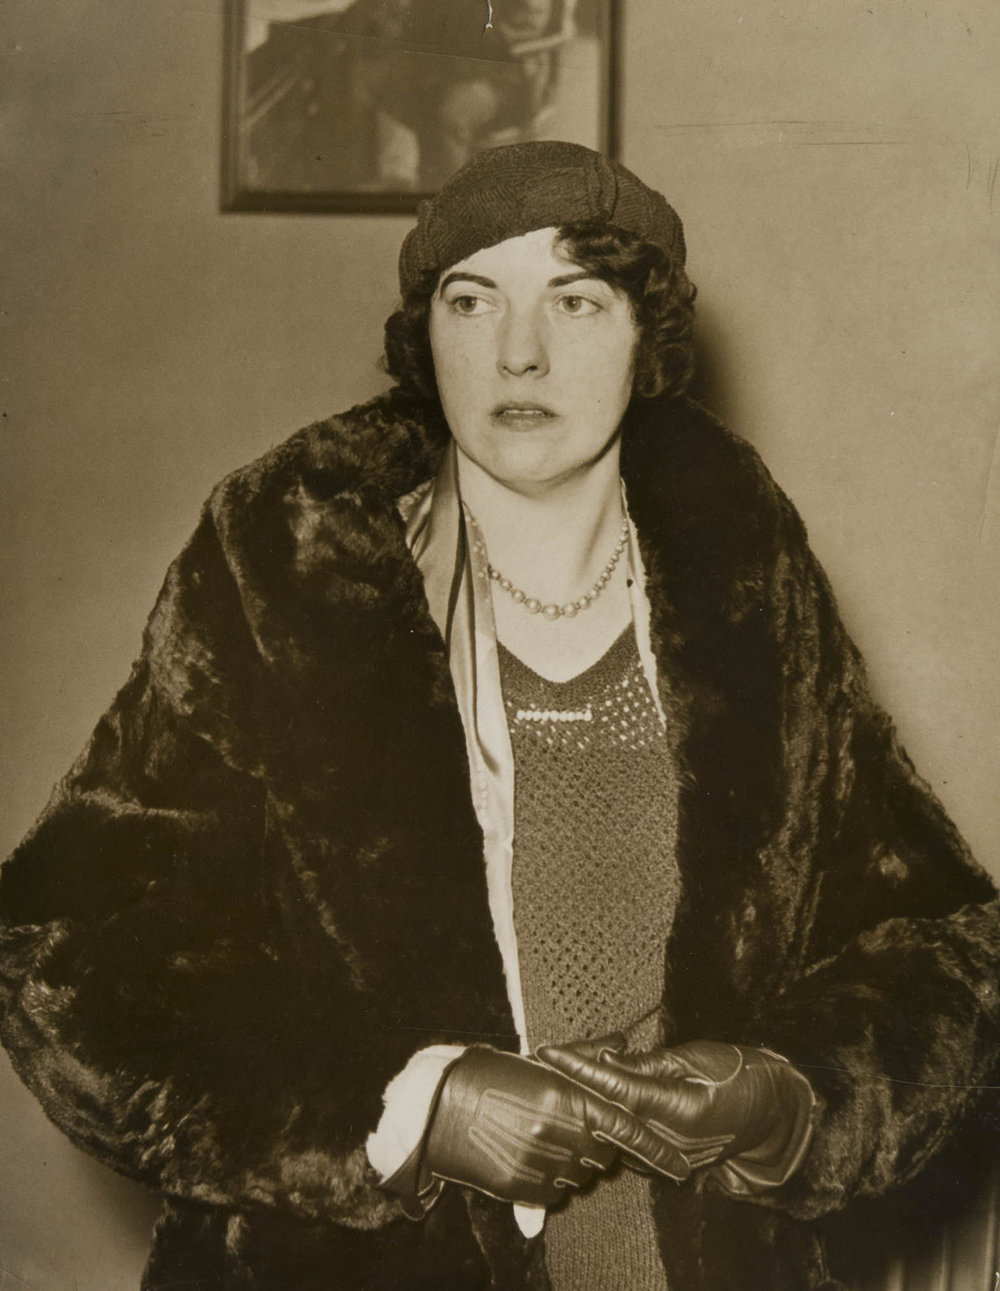 Evelyn Hazen outside the courtroom, 1937. Image courtesy of Knoxville News Sentinel.